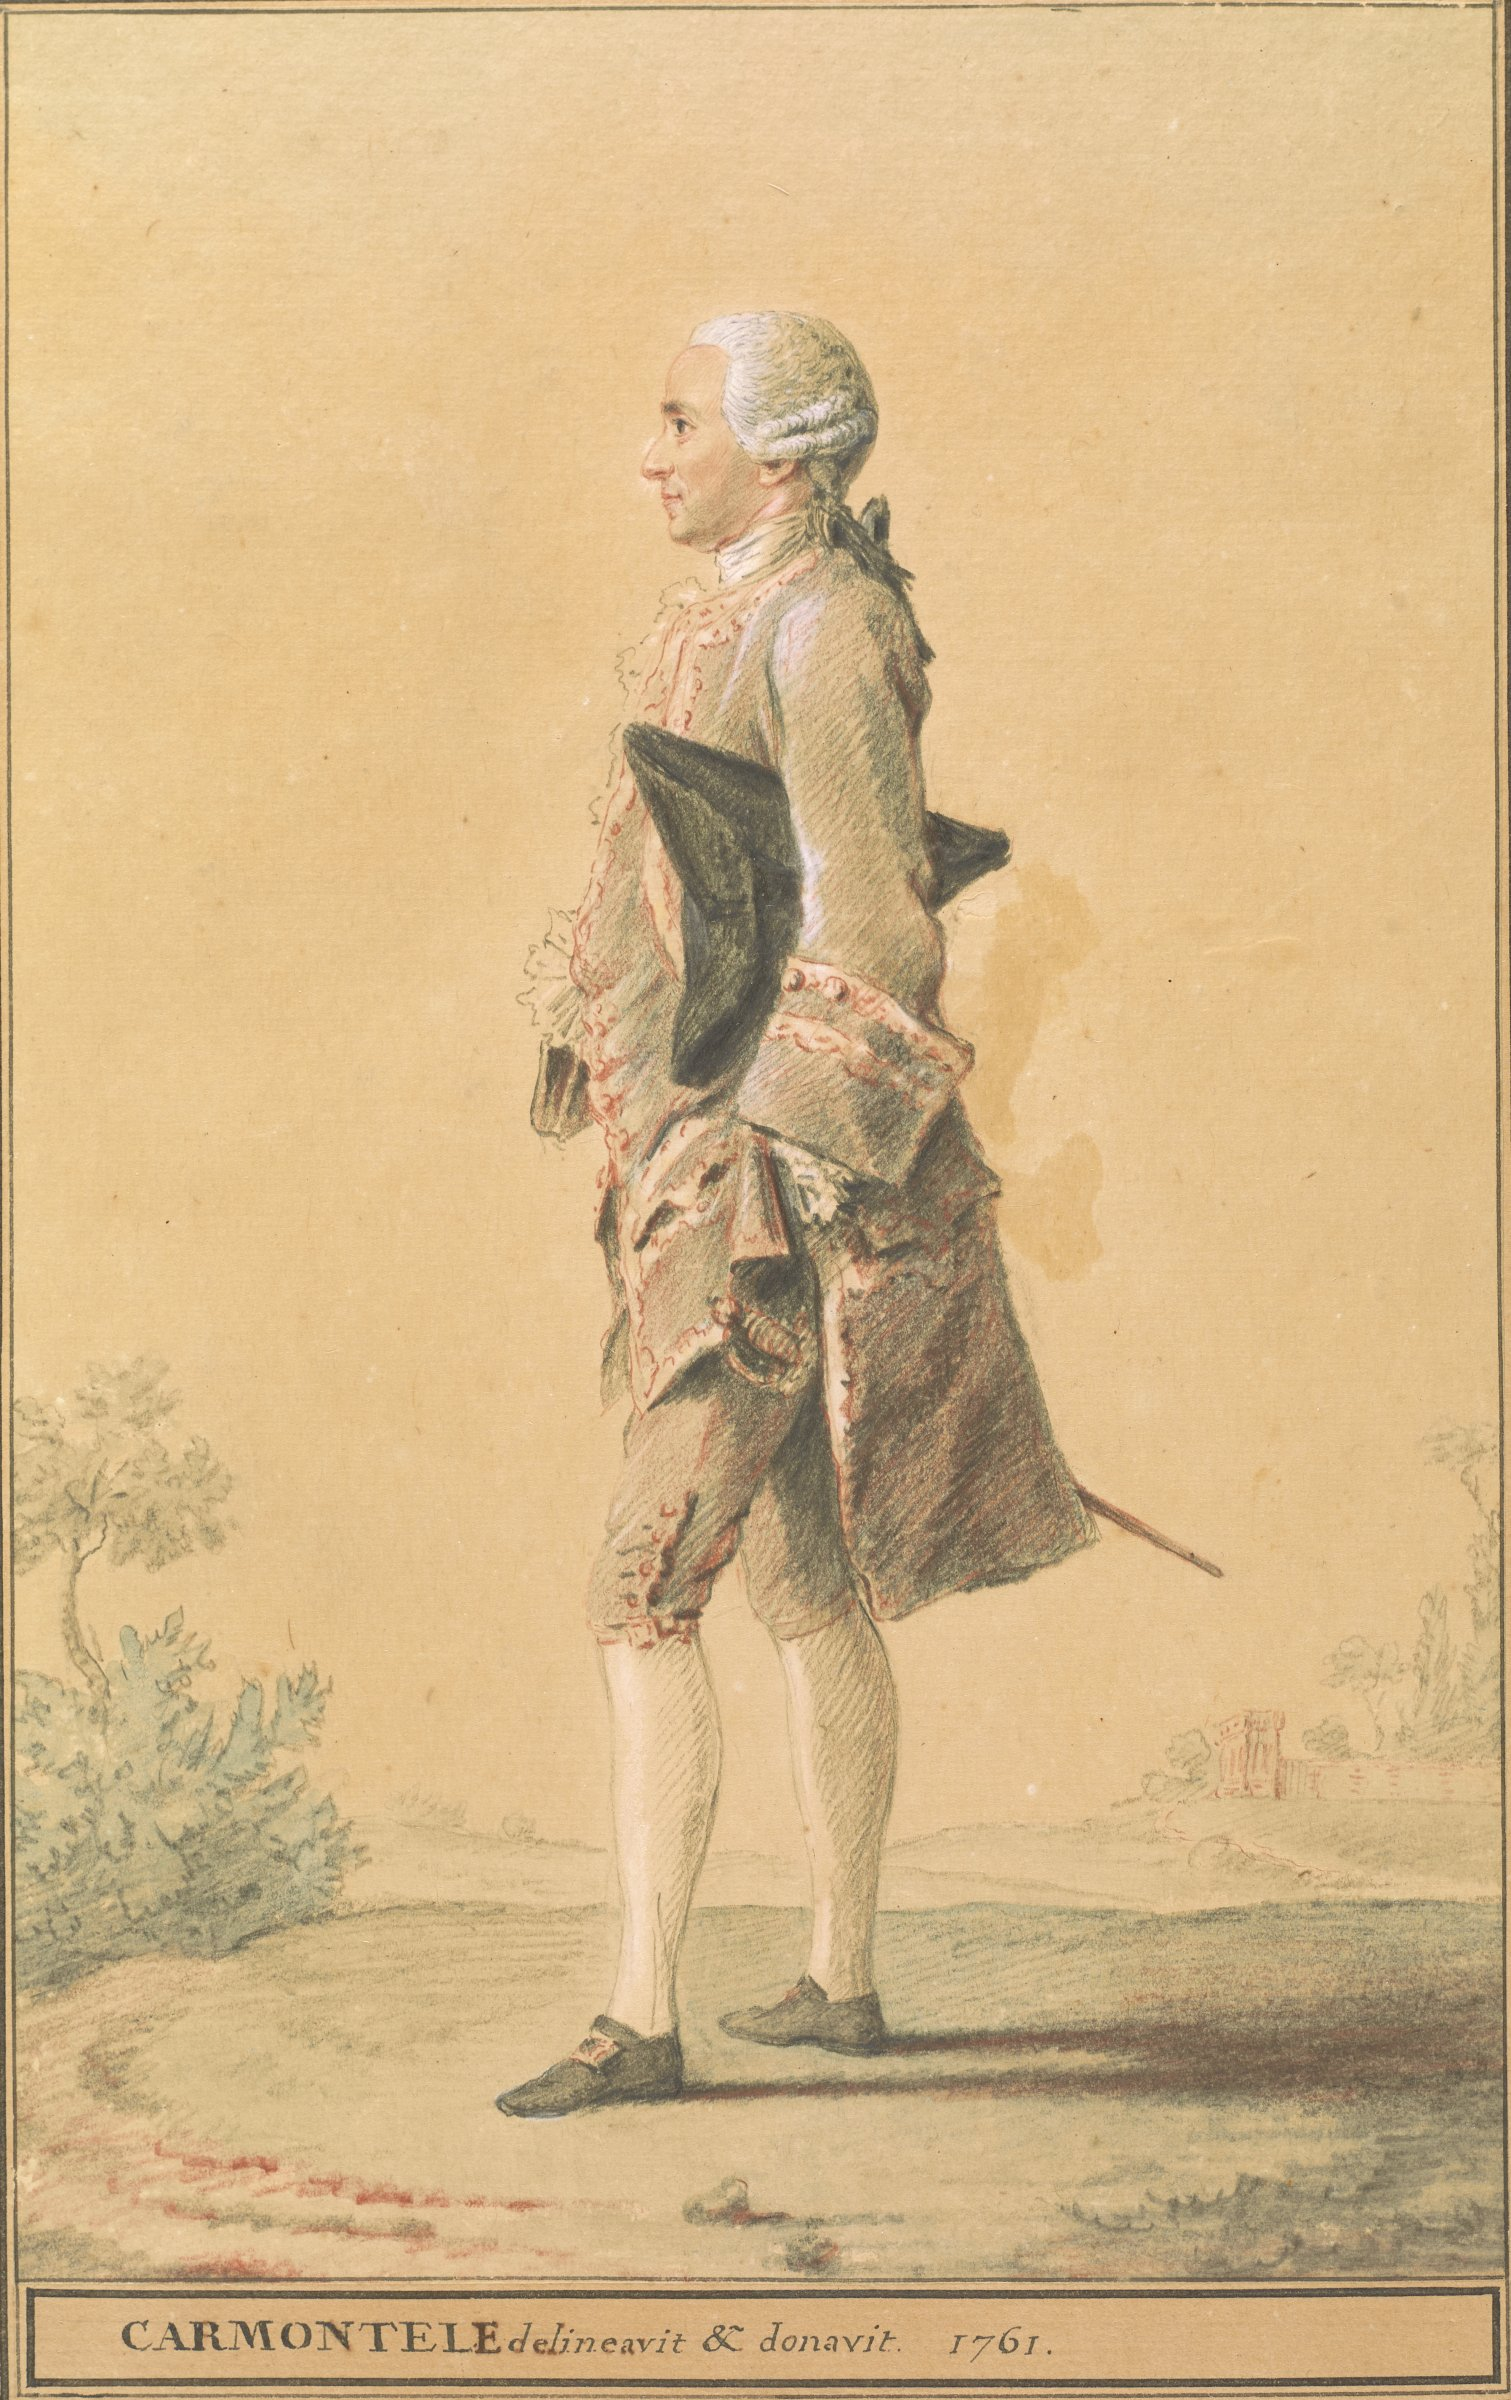 Standing man facing left with a tricorn hat tucked under his left arm, and a sword hanging from his right side. He stands in a minimal landscape with a building in the far right distance.